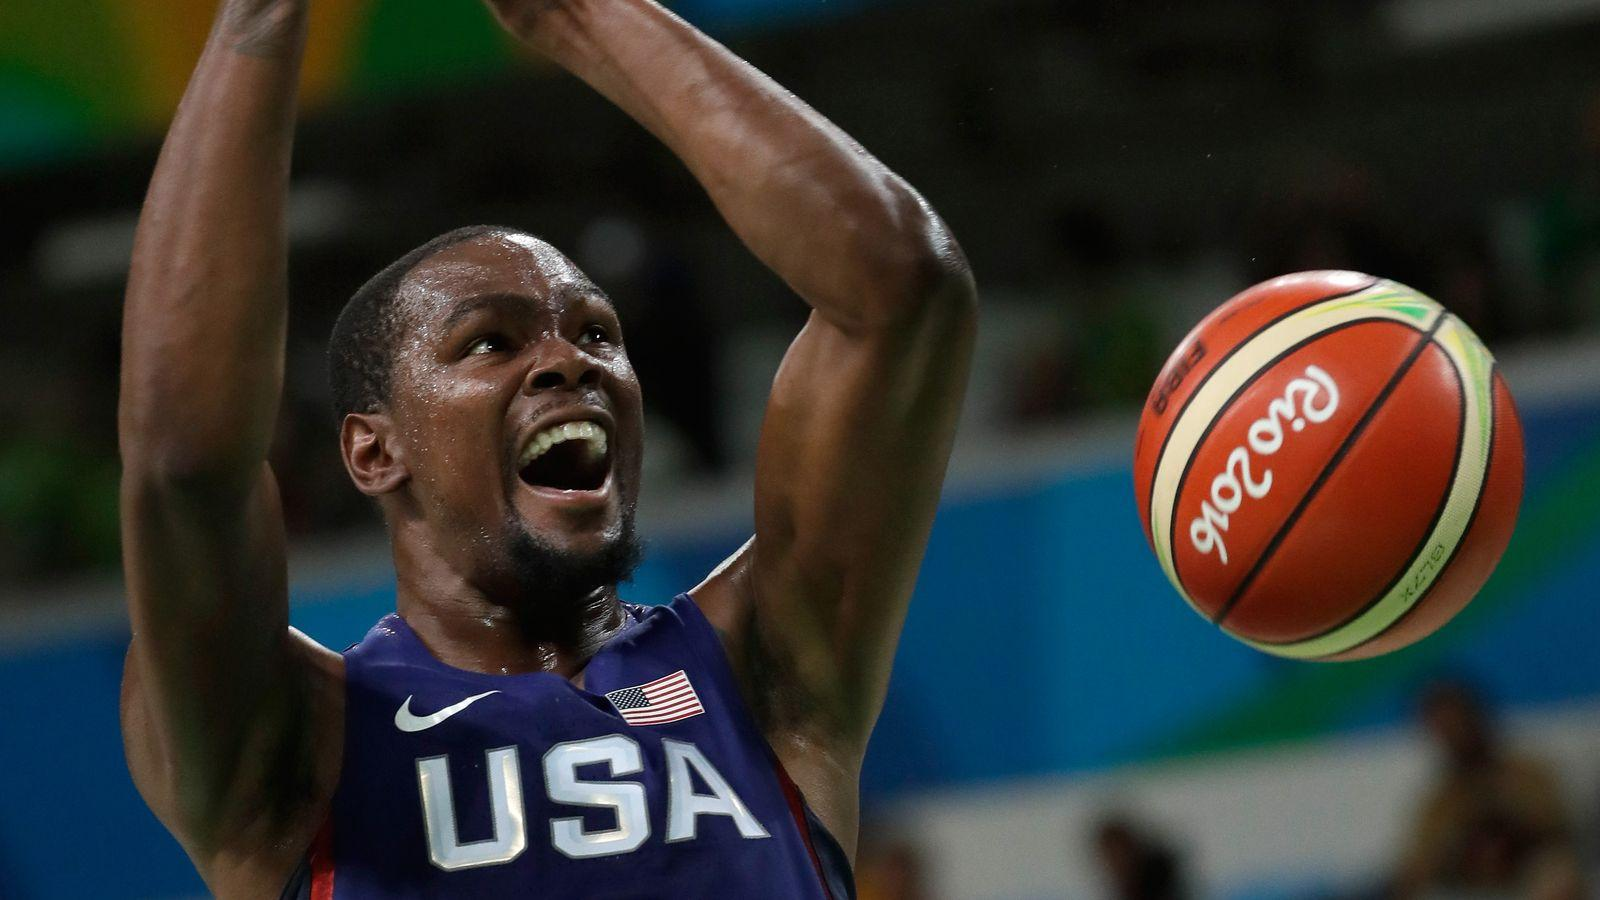 Durant leads Team USA to another gold medal